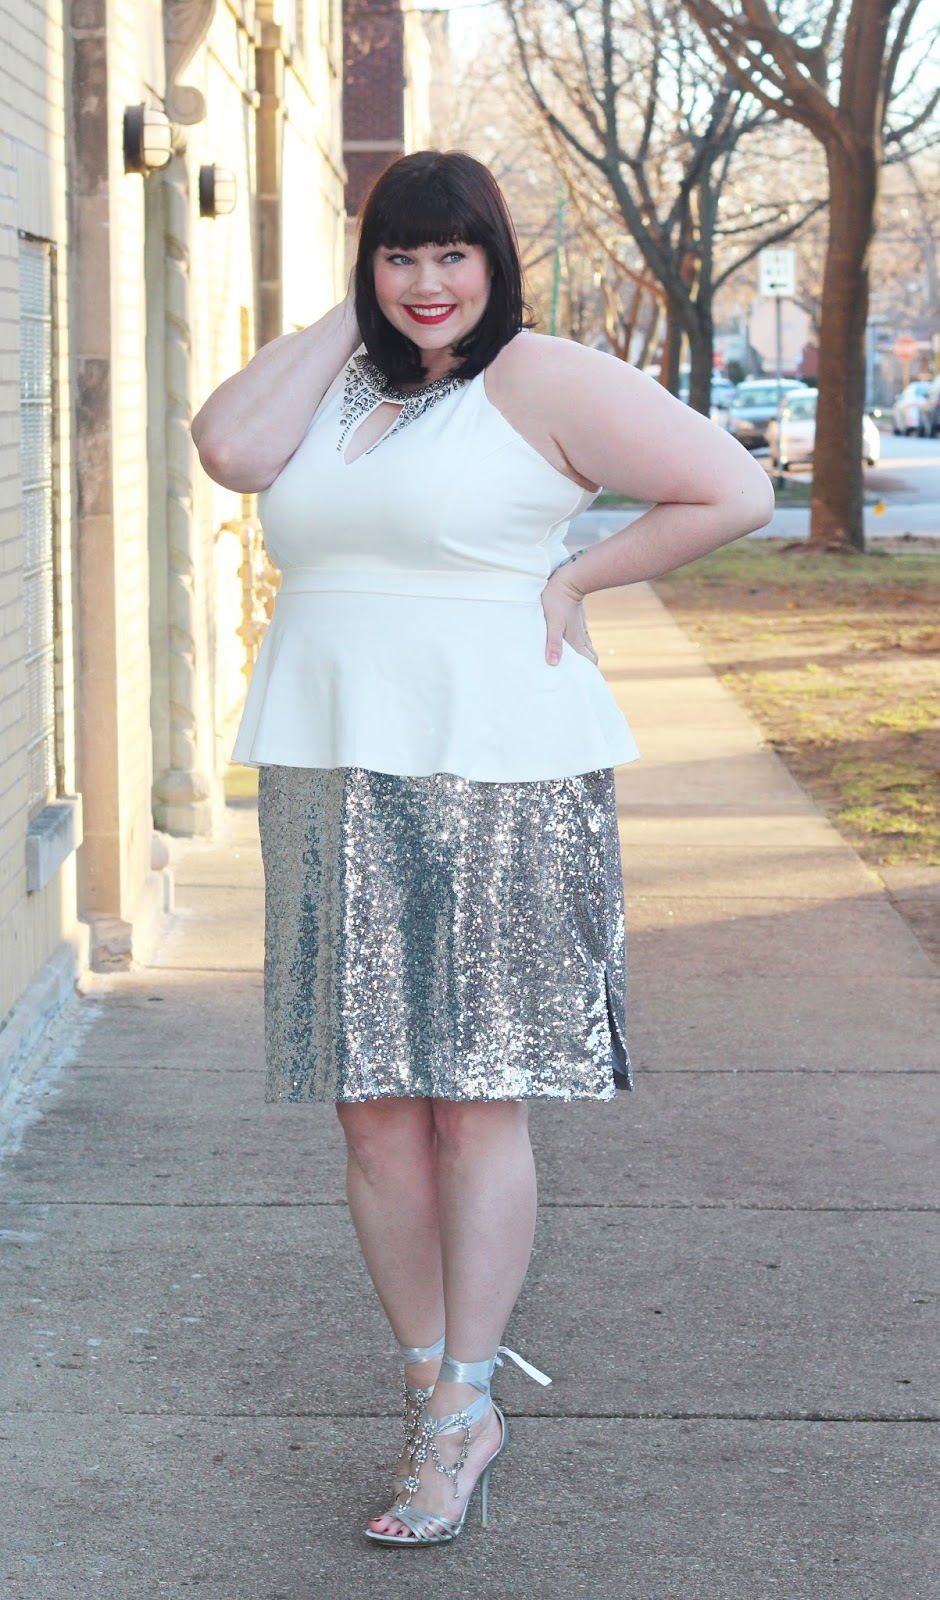 Amber from Style Plus Curves in a White Plus Size Peplum Top  and Sequin Skirt from Fullbeauty.com